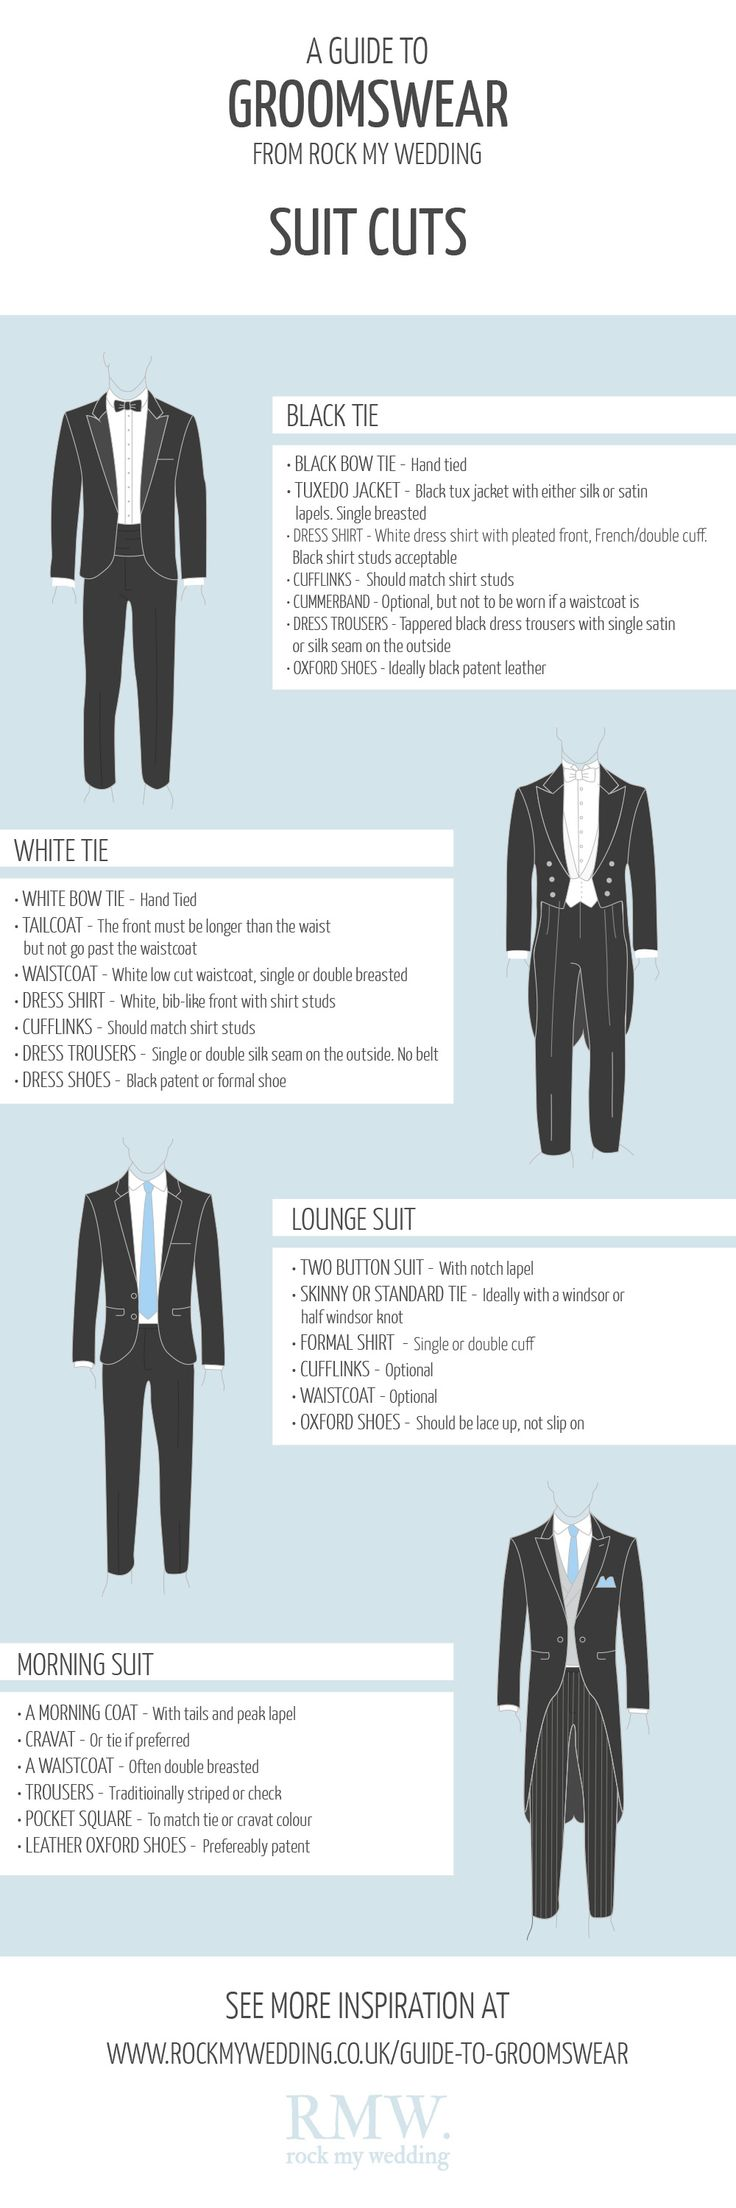 best grooms accessories images on pinterest boyfriends grooms